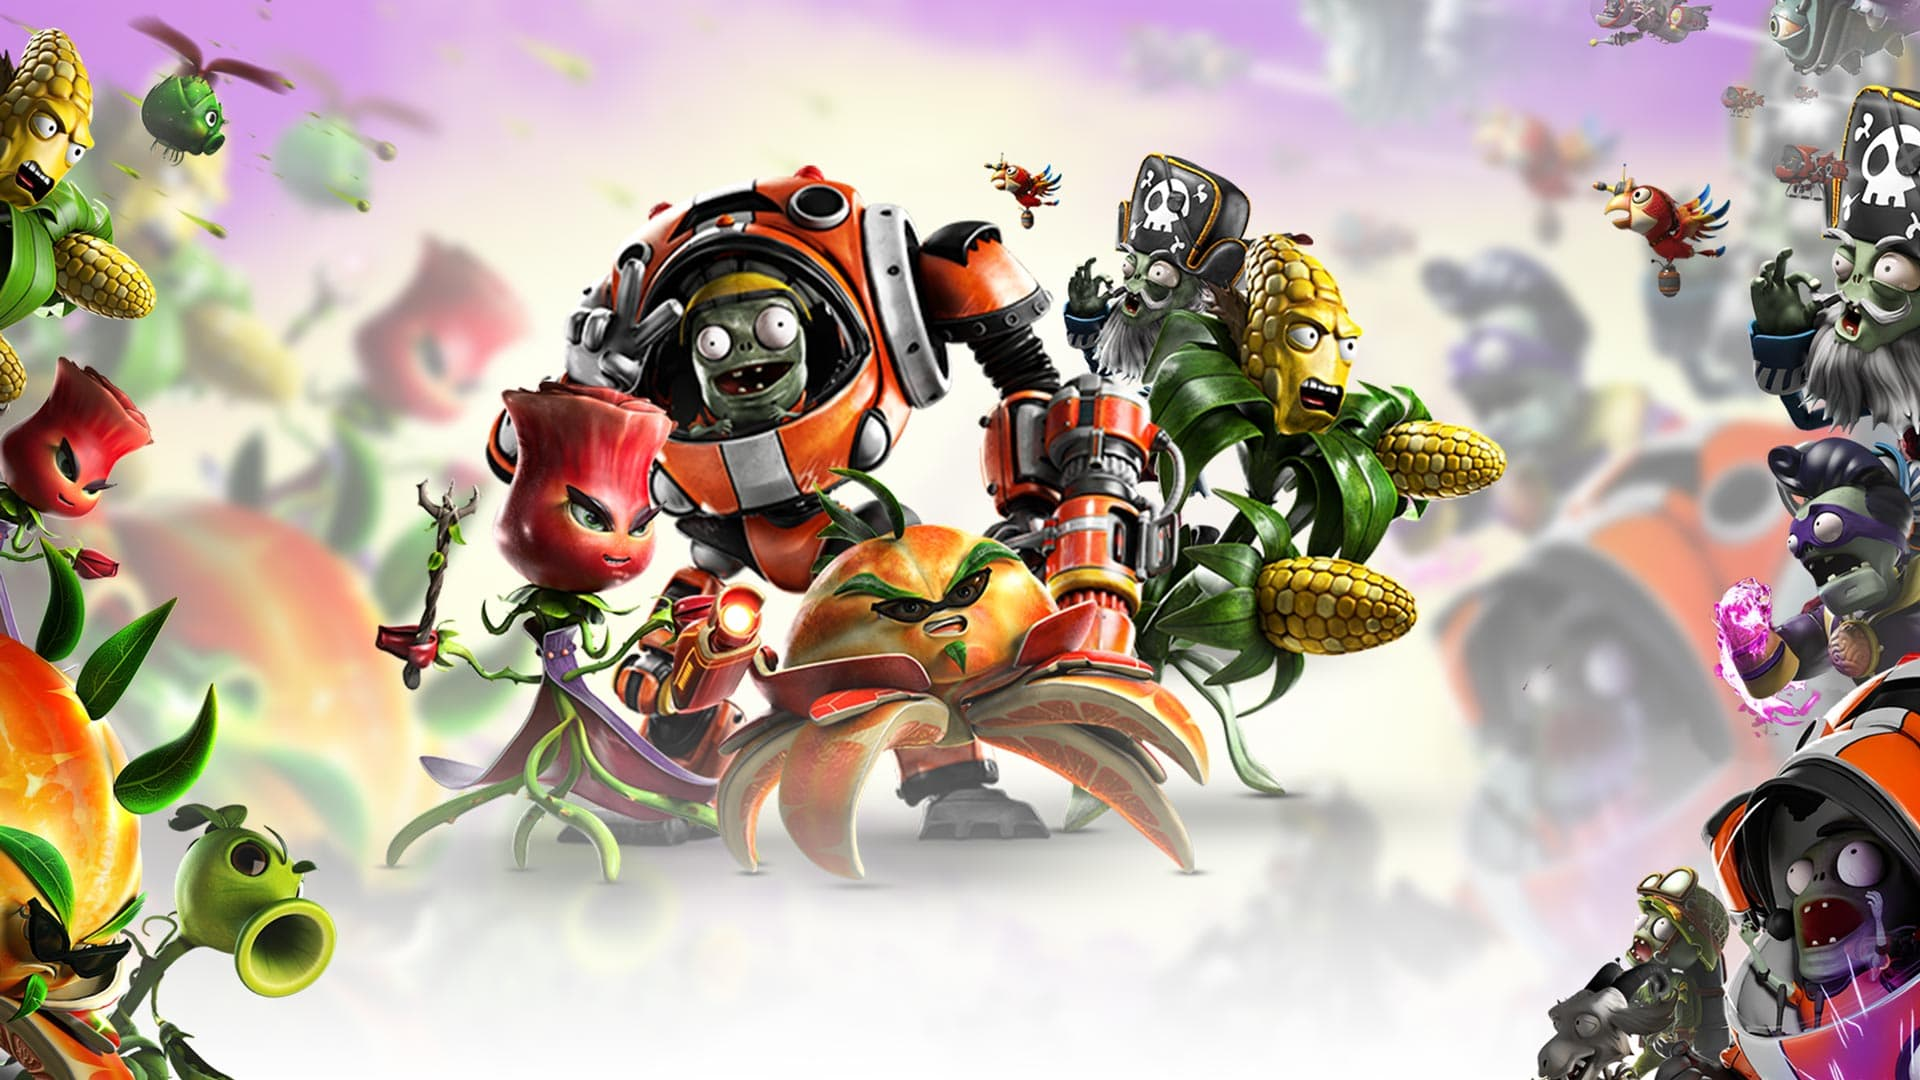 Plants vs. Zombies: Garden Warfare 2 Background